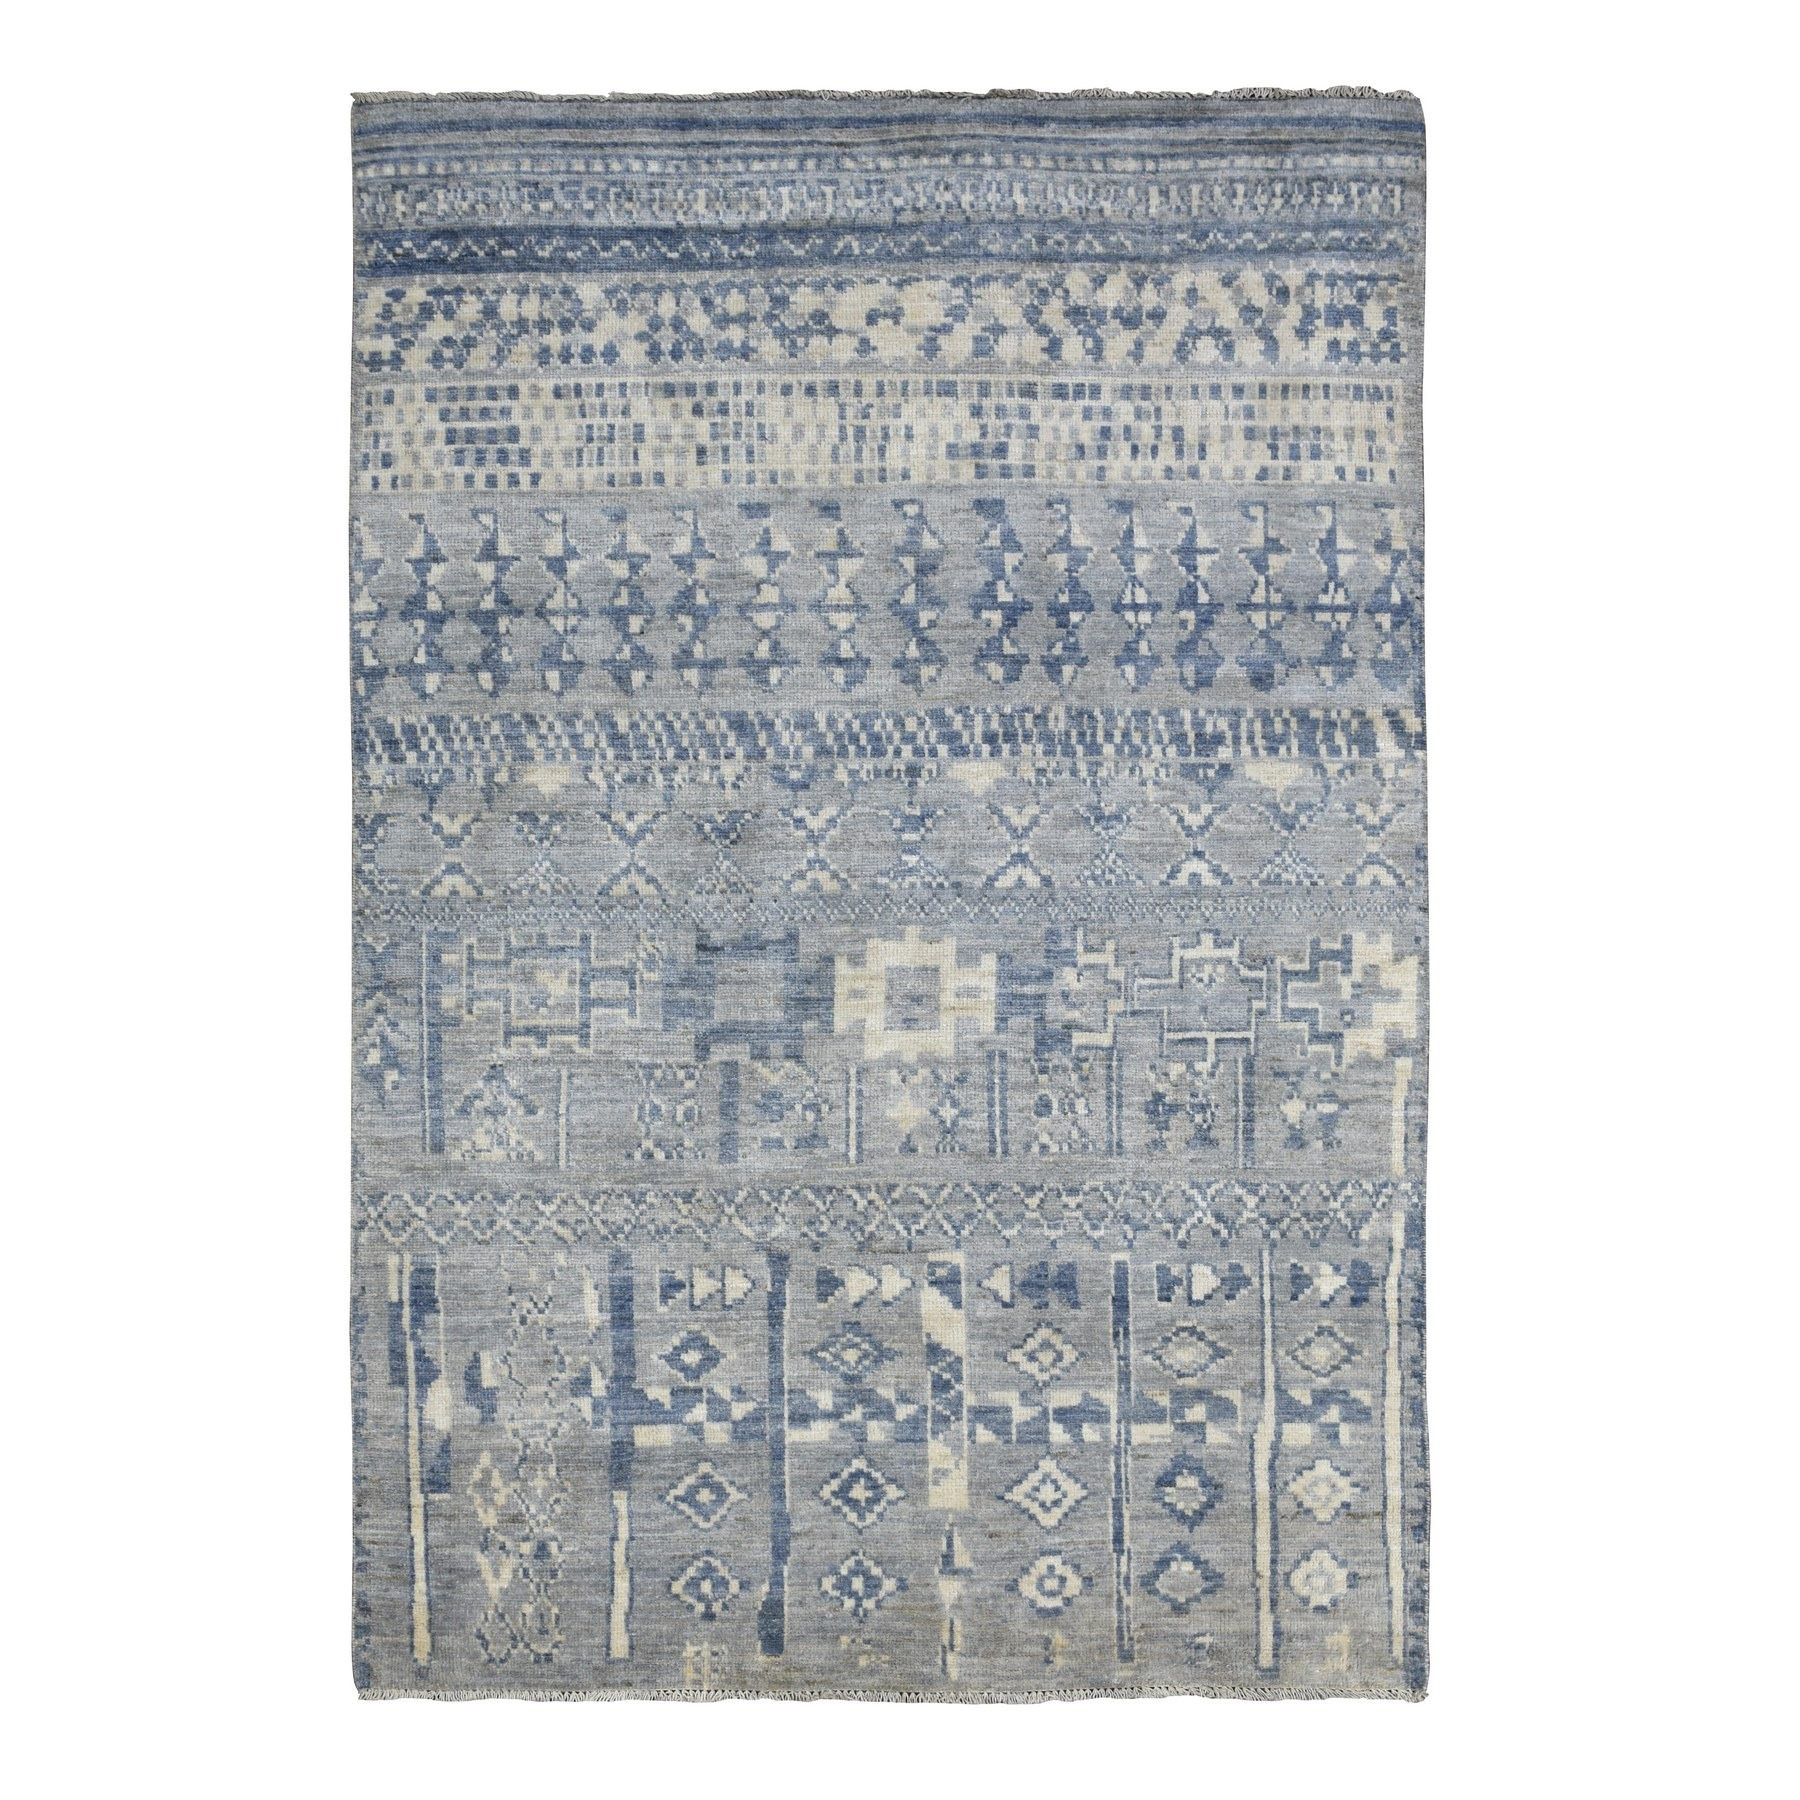 Nomadic And Village Collection Hand Knotted Grey Rug No: 1136602